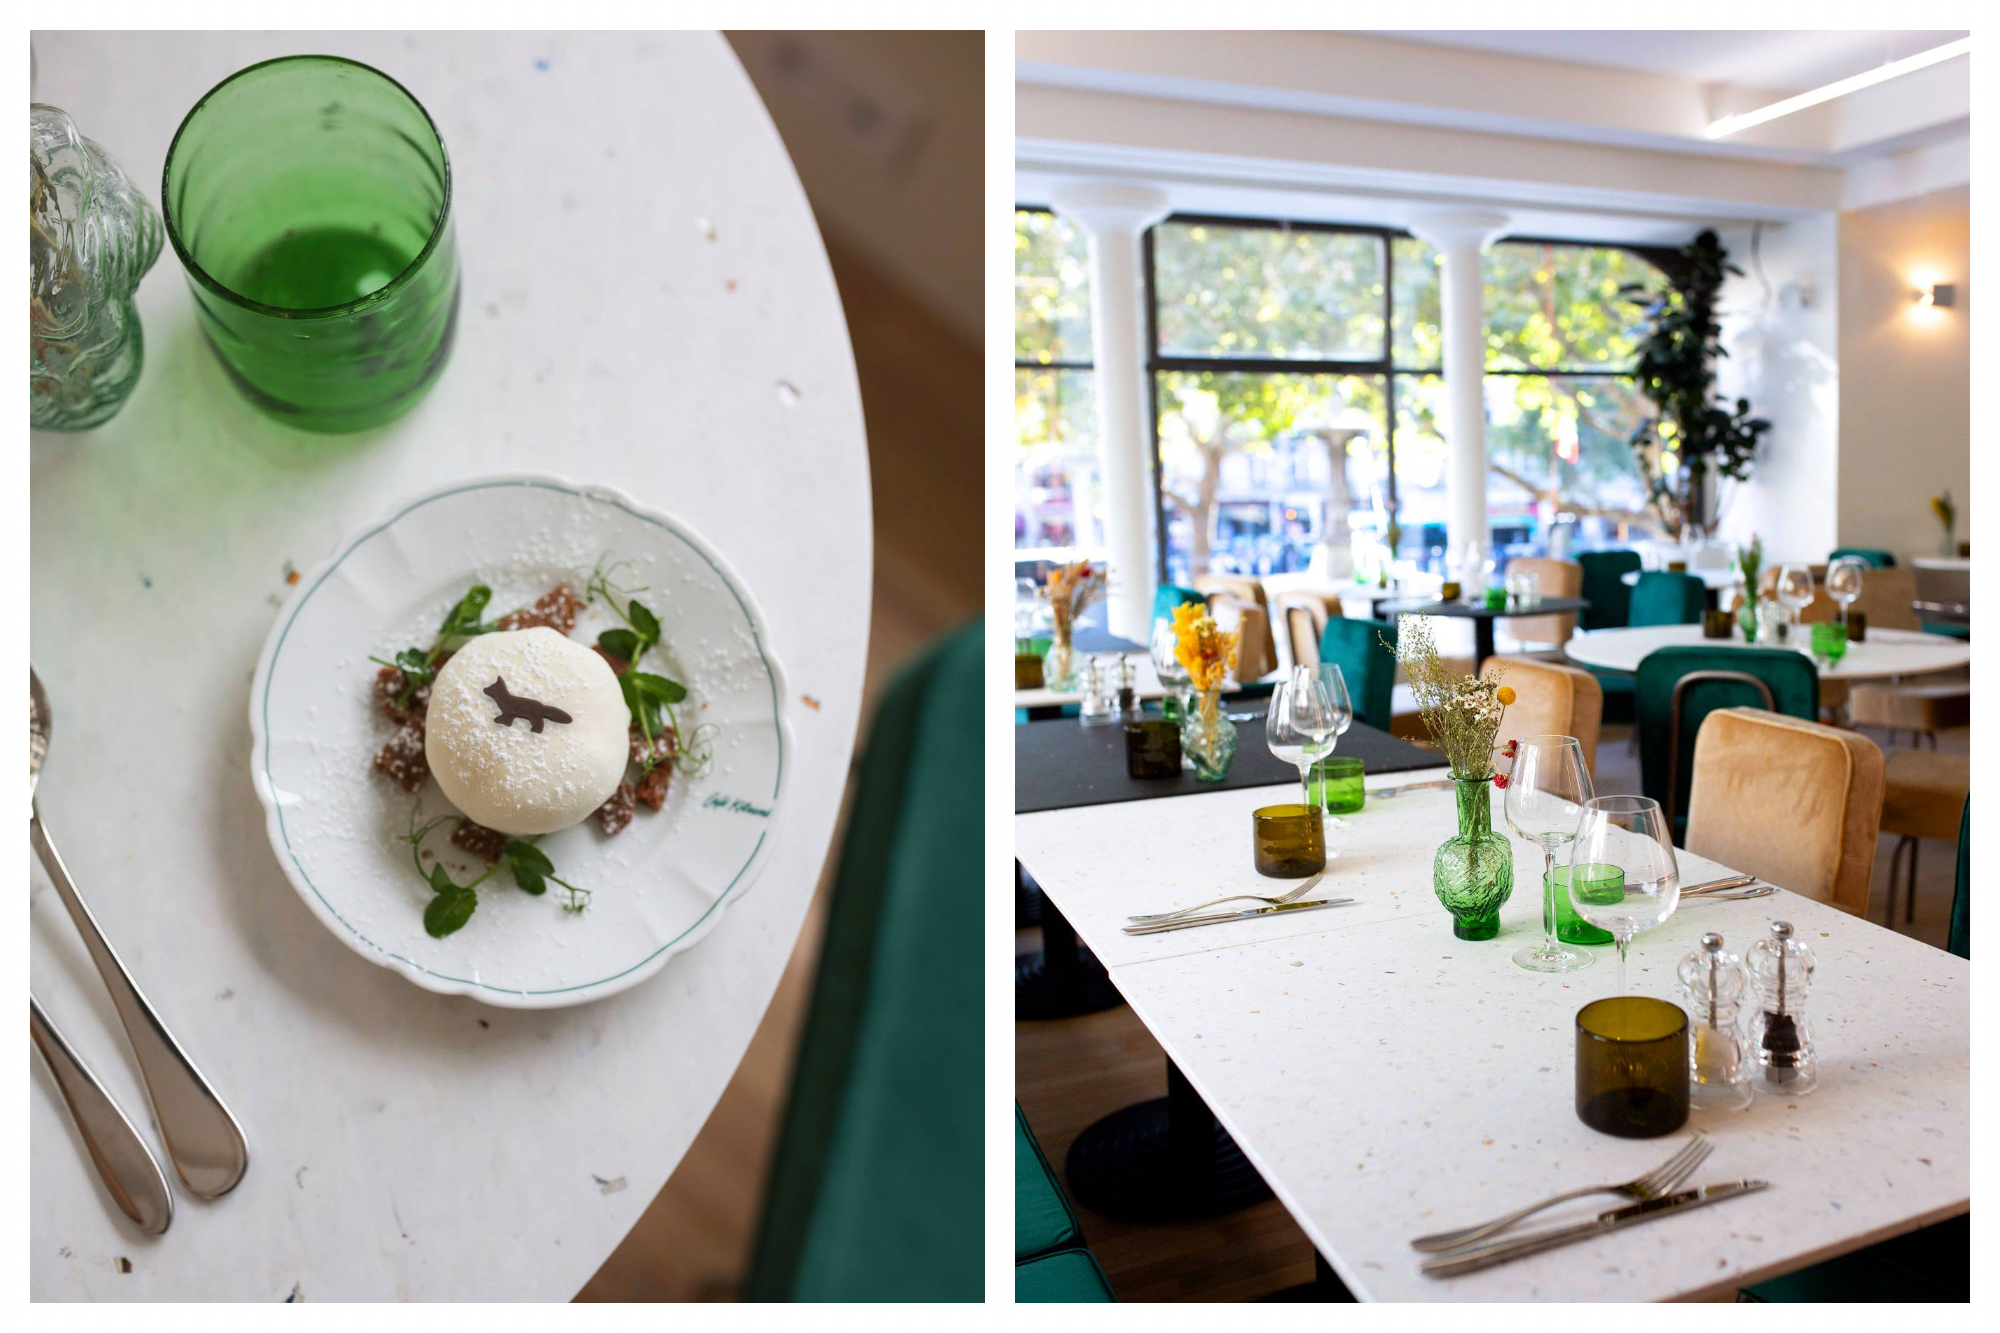 A rice ball dish with a small design of a fox on a table (left) and light and bright interiors (right) of Café Kitsuné in Paris.